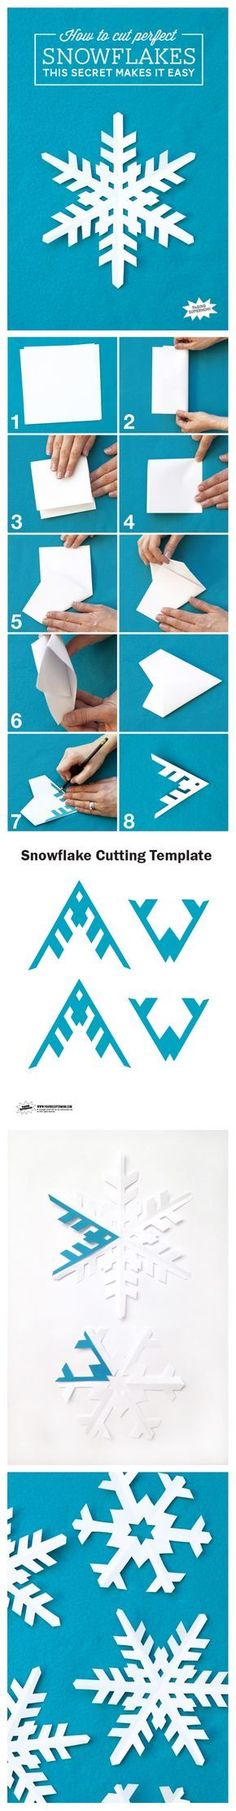 How to CUT A PERFECT & REPEATABLE SNOWFLAKE EVERY TIME. Folding instructions & templates included. Once you know the method and make other snowflakes you would like to be able to recreate you can make a template of your design.